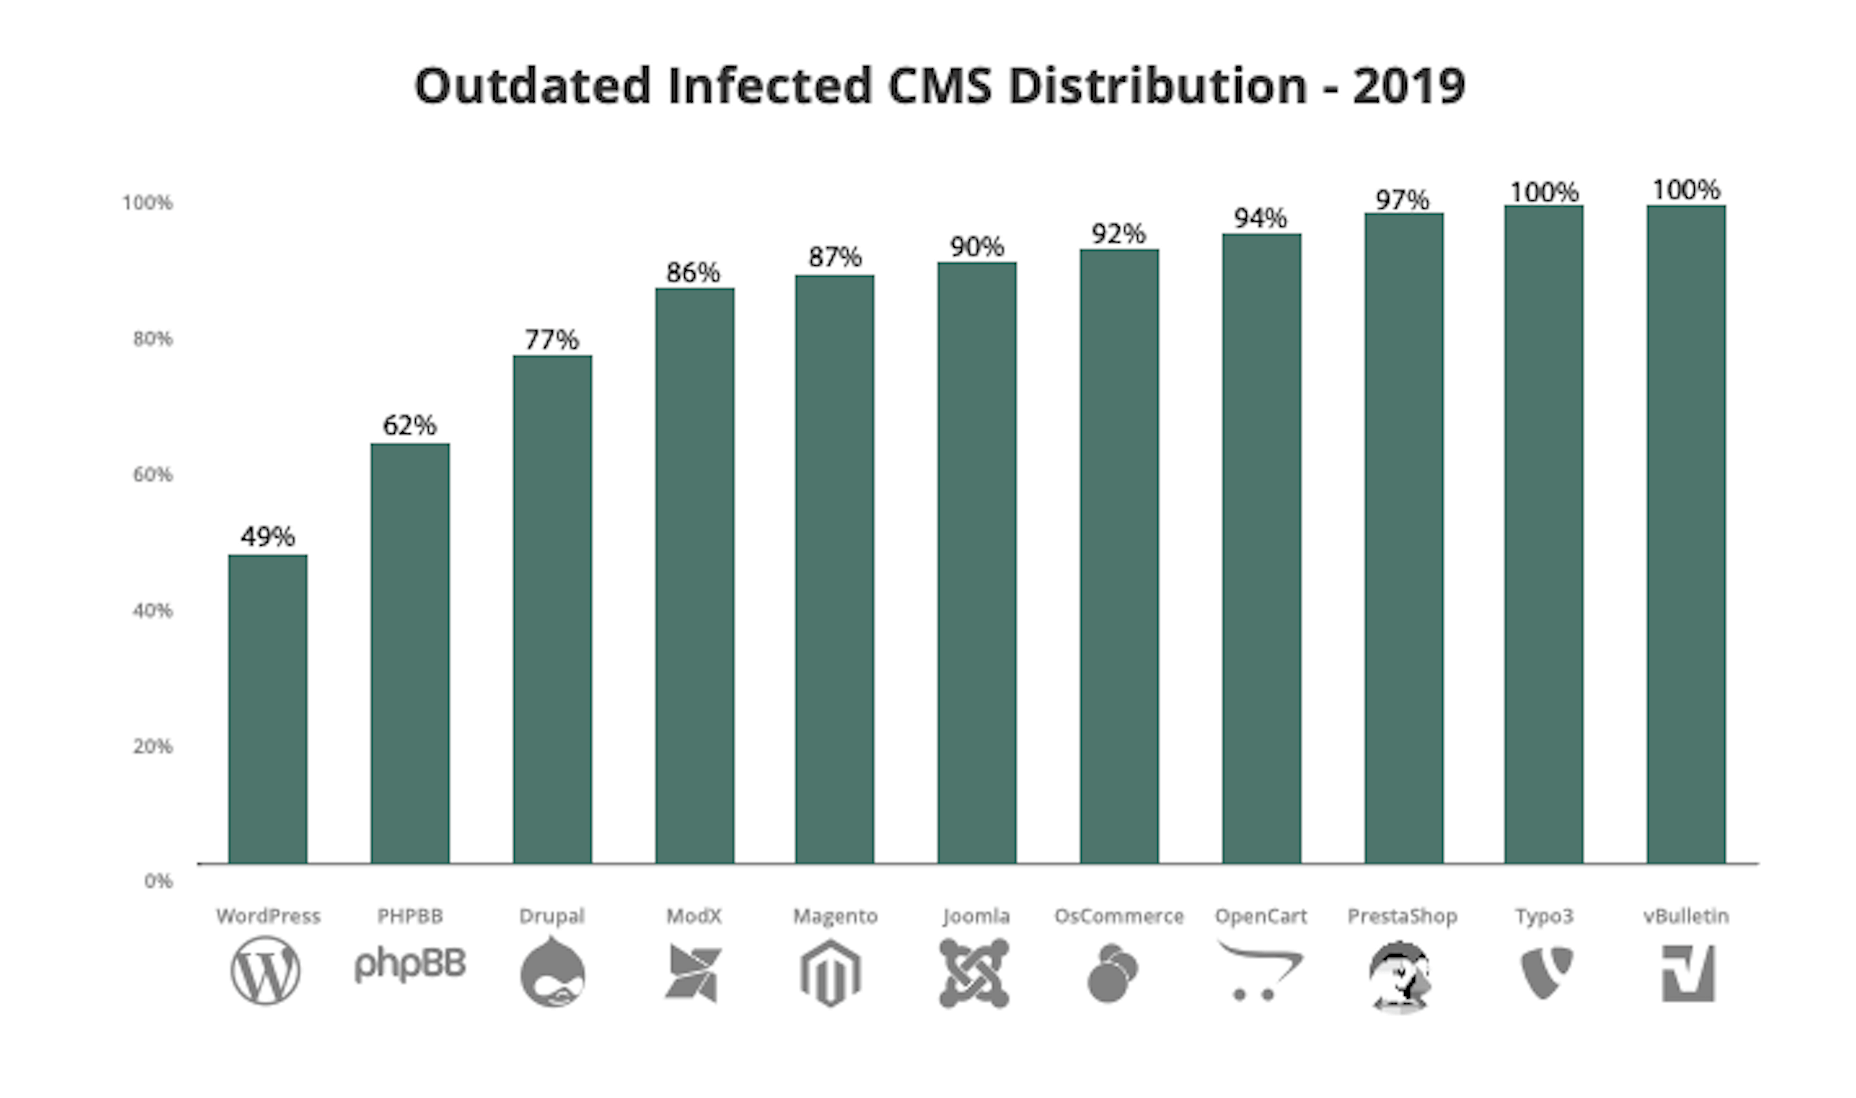 Sucuri Report - Outdated Infected CMS